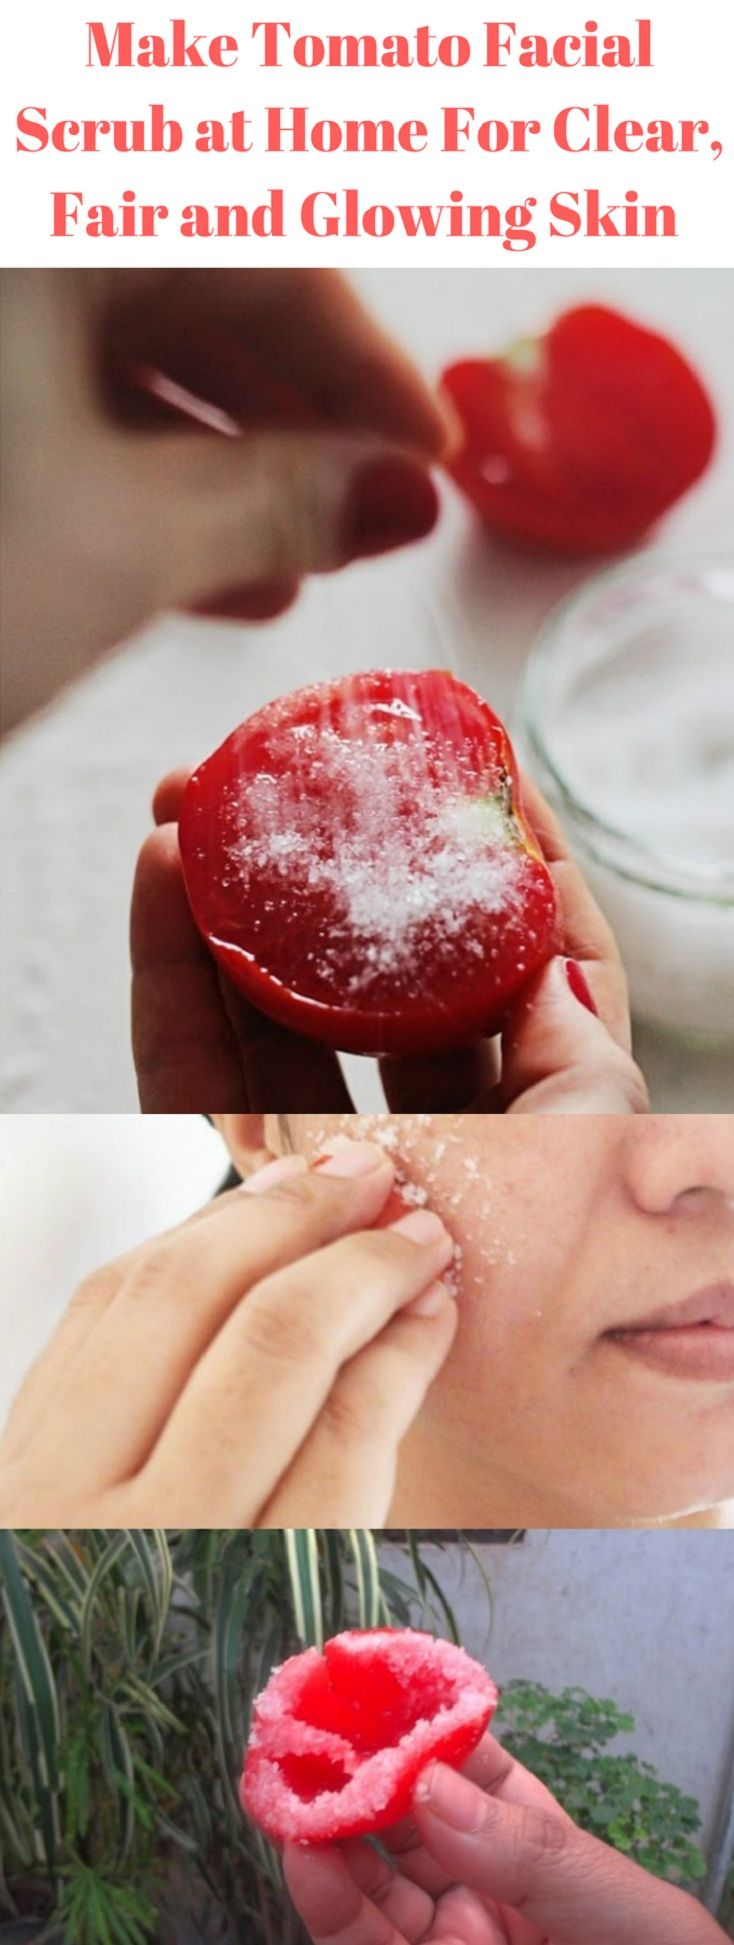 Make Tomato Facial Scrub at Home For Clear, Fair a… #Health #Wellness #Fitness #Tips #Food #Motivation #Remedies #Natural #Mental #Holistic #Skin #Woman's #Facts #Care #Lifestyle #Detox #Beauty #Diet #Body #Nutricion #Skincare #NaturalTreatments #HealthyLifestyle